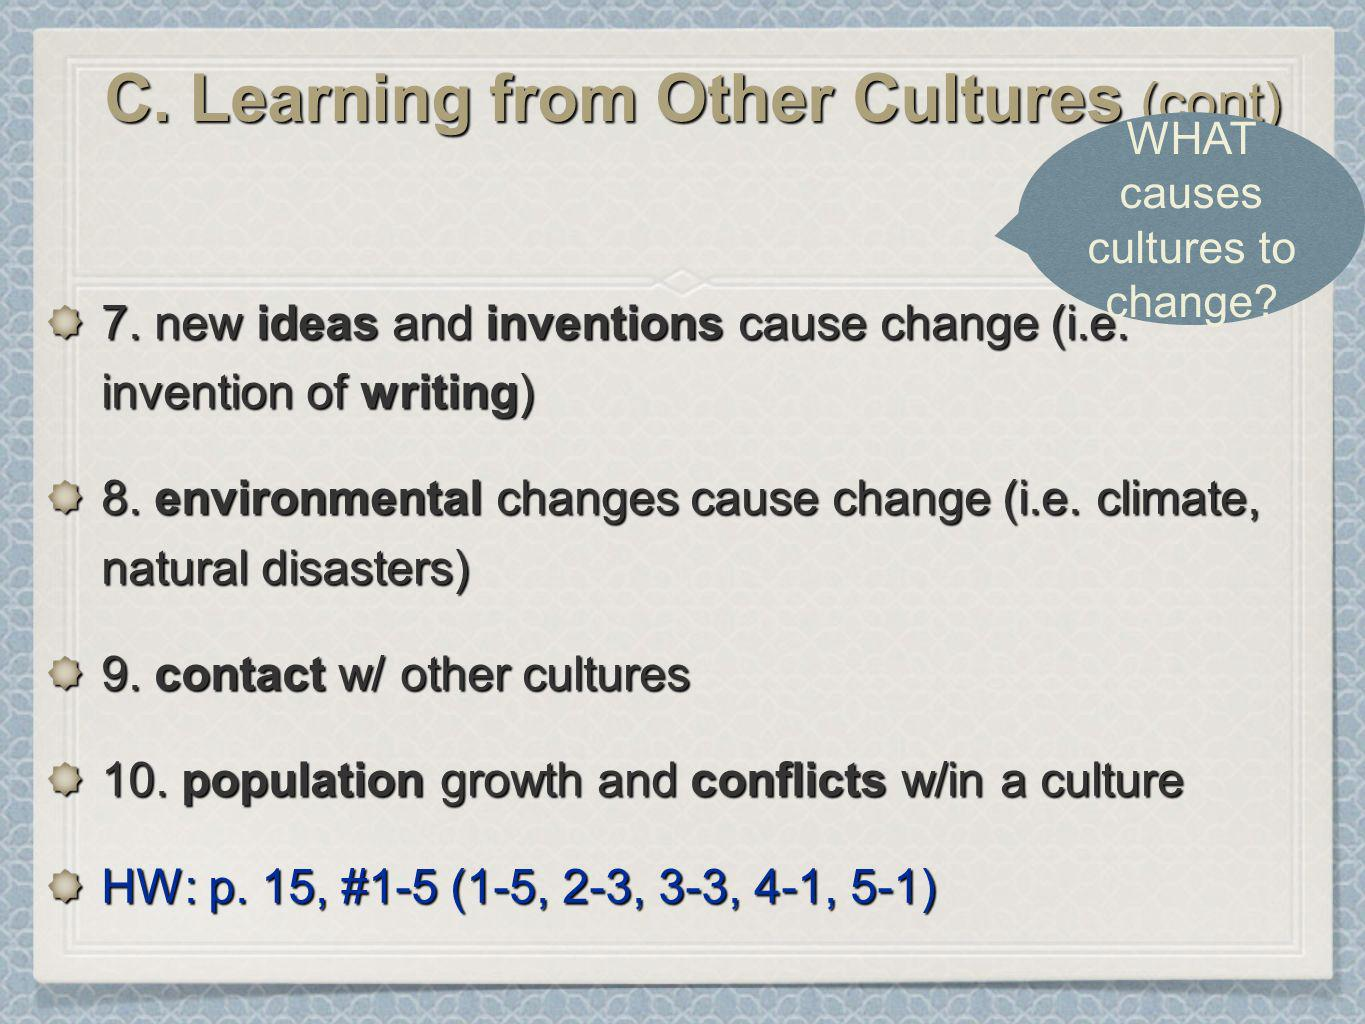 C. Learning from Other Cultures (cont) 7. new ideas and inventions cause change (i.e. invention of writing) 8. environmental changes cause change (i.e